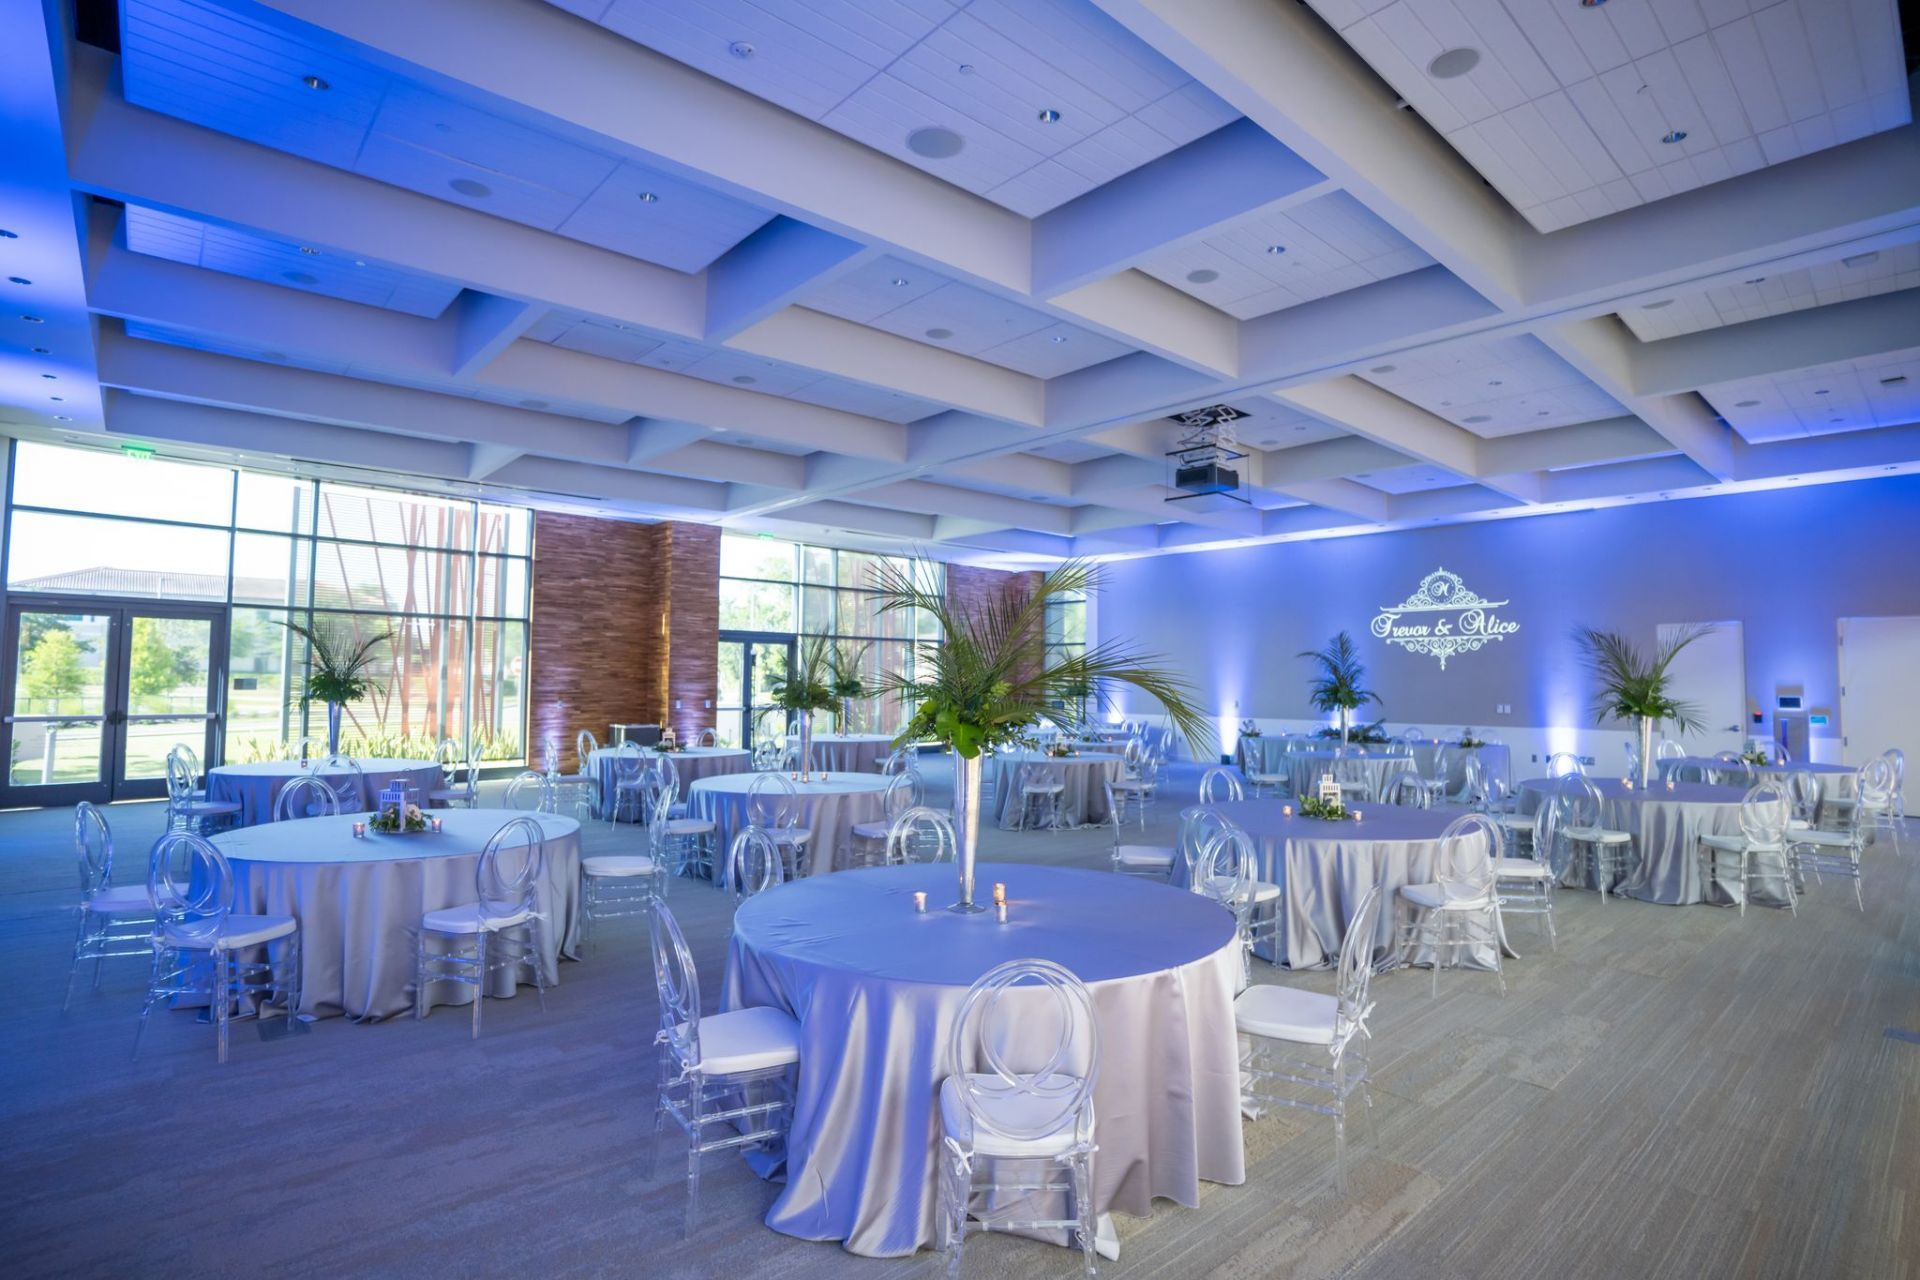 Wellvue- The Center for Health & Wellbeing Orlando5